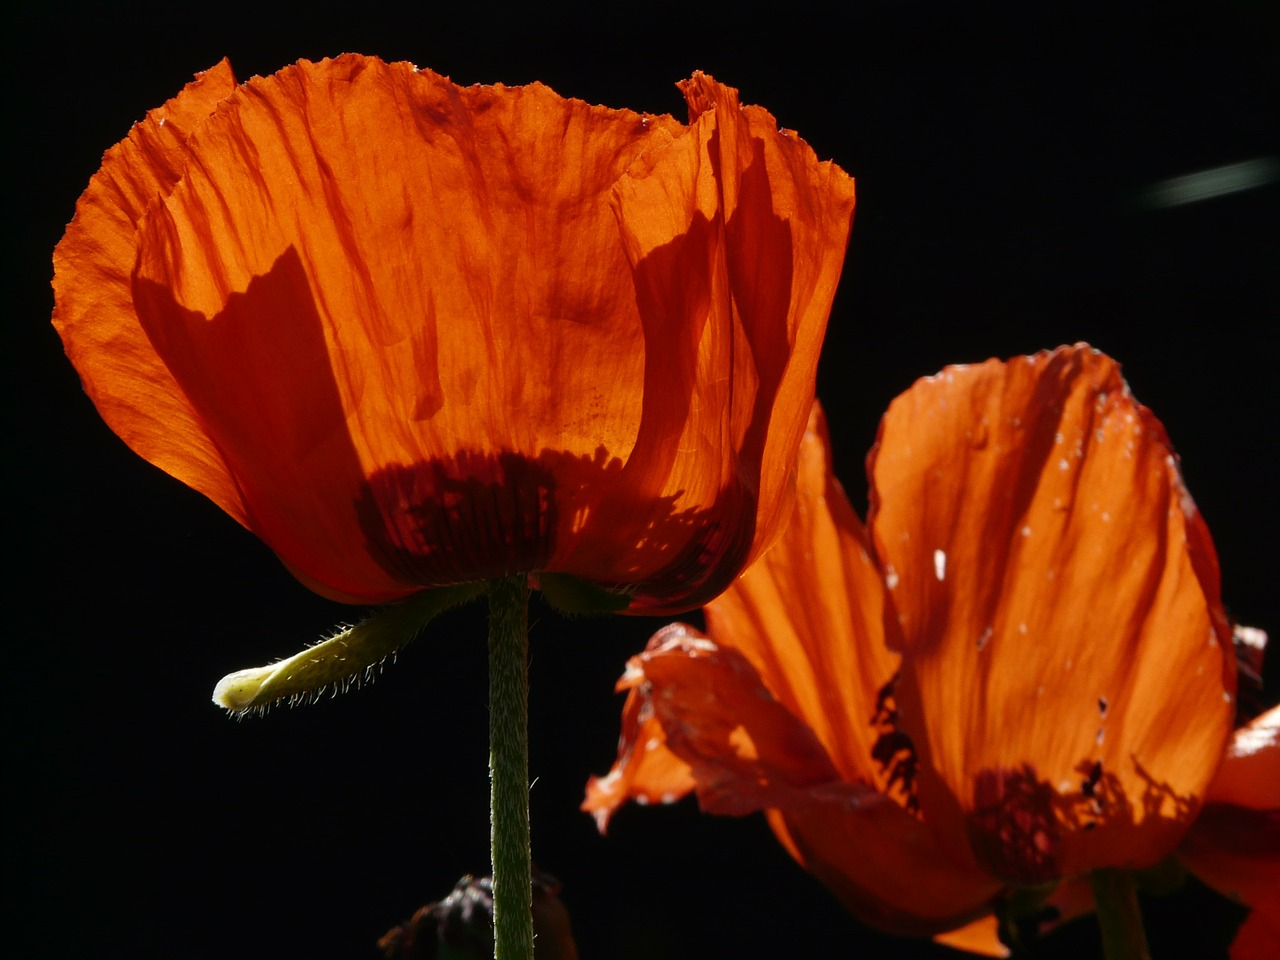 klatschmohn poppy blossom free photo